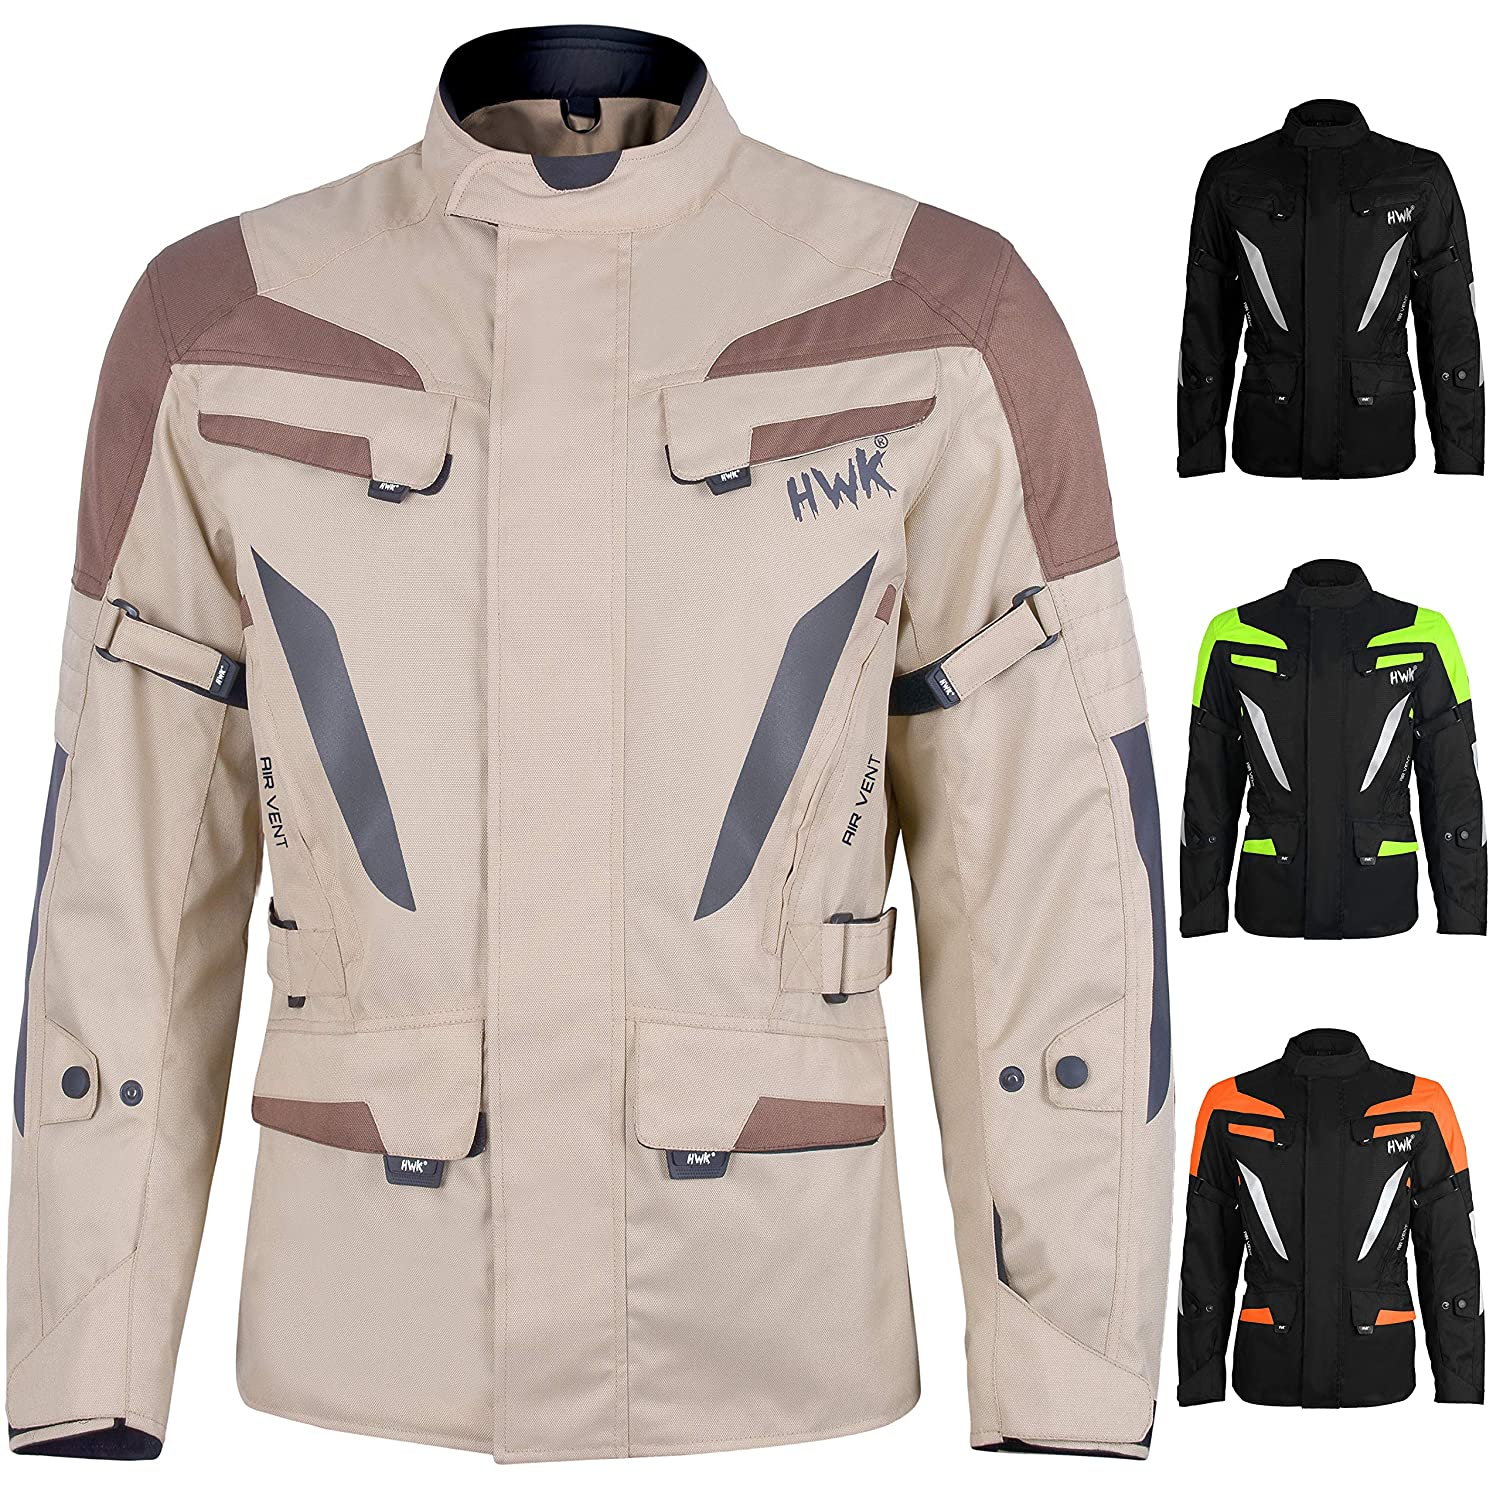 Neon-Orange, 2XL Adventure//Touring Mens Motorcycle Jacket Adv Dual Sport Racing CE Armored Waterproof Windproof Jackets All-Weather